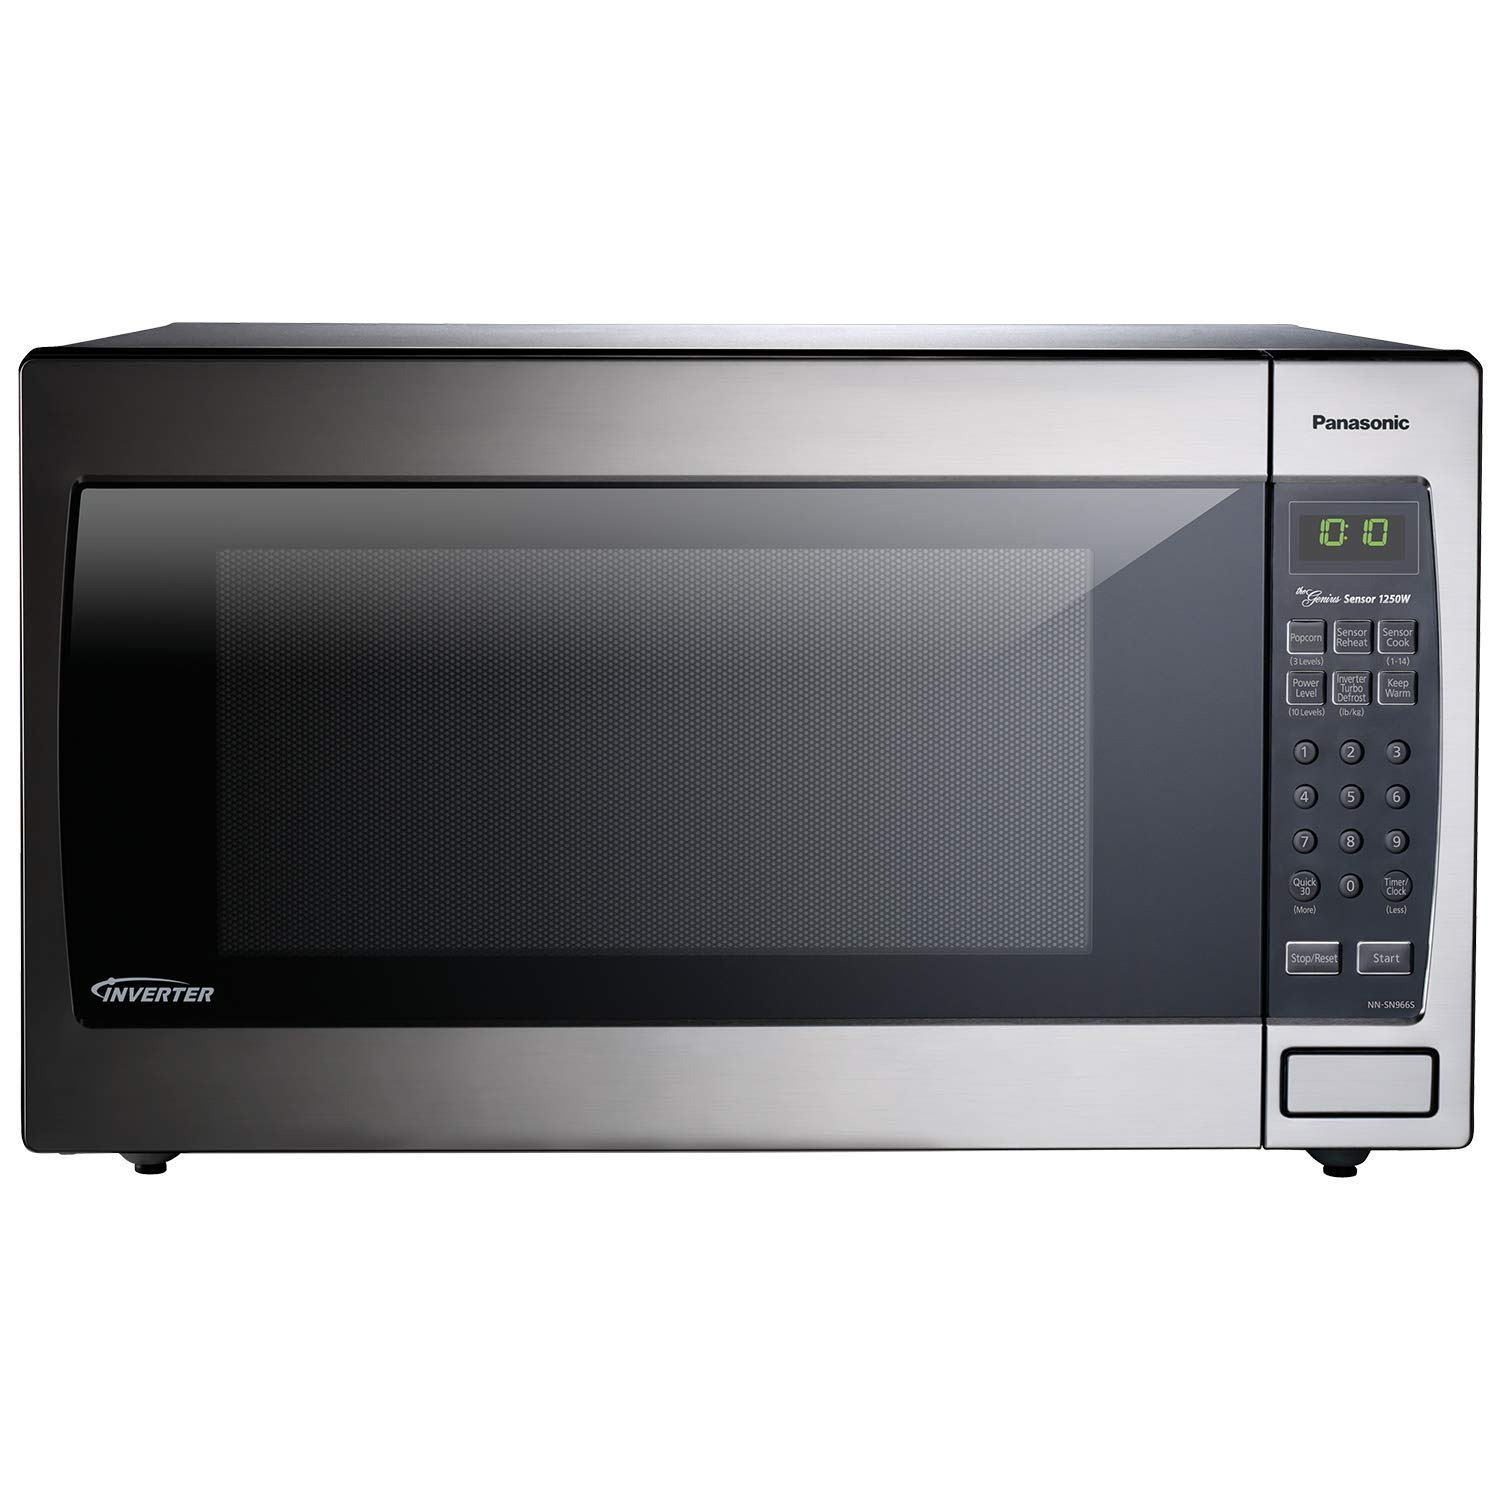 Microwave Vs Oven: Which Is The Best Lightwave Oven Vs Microwave